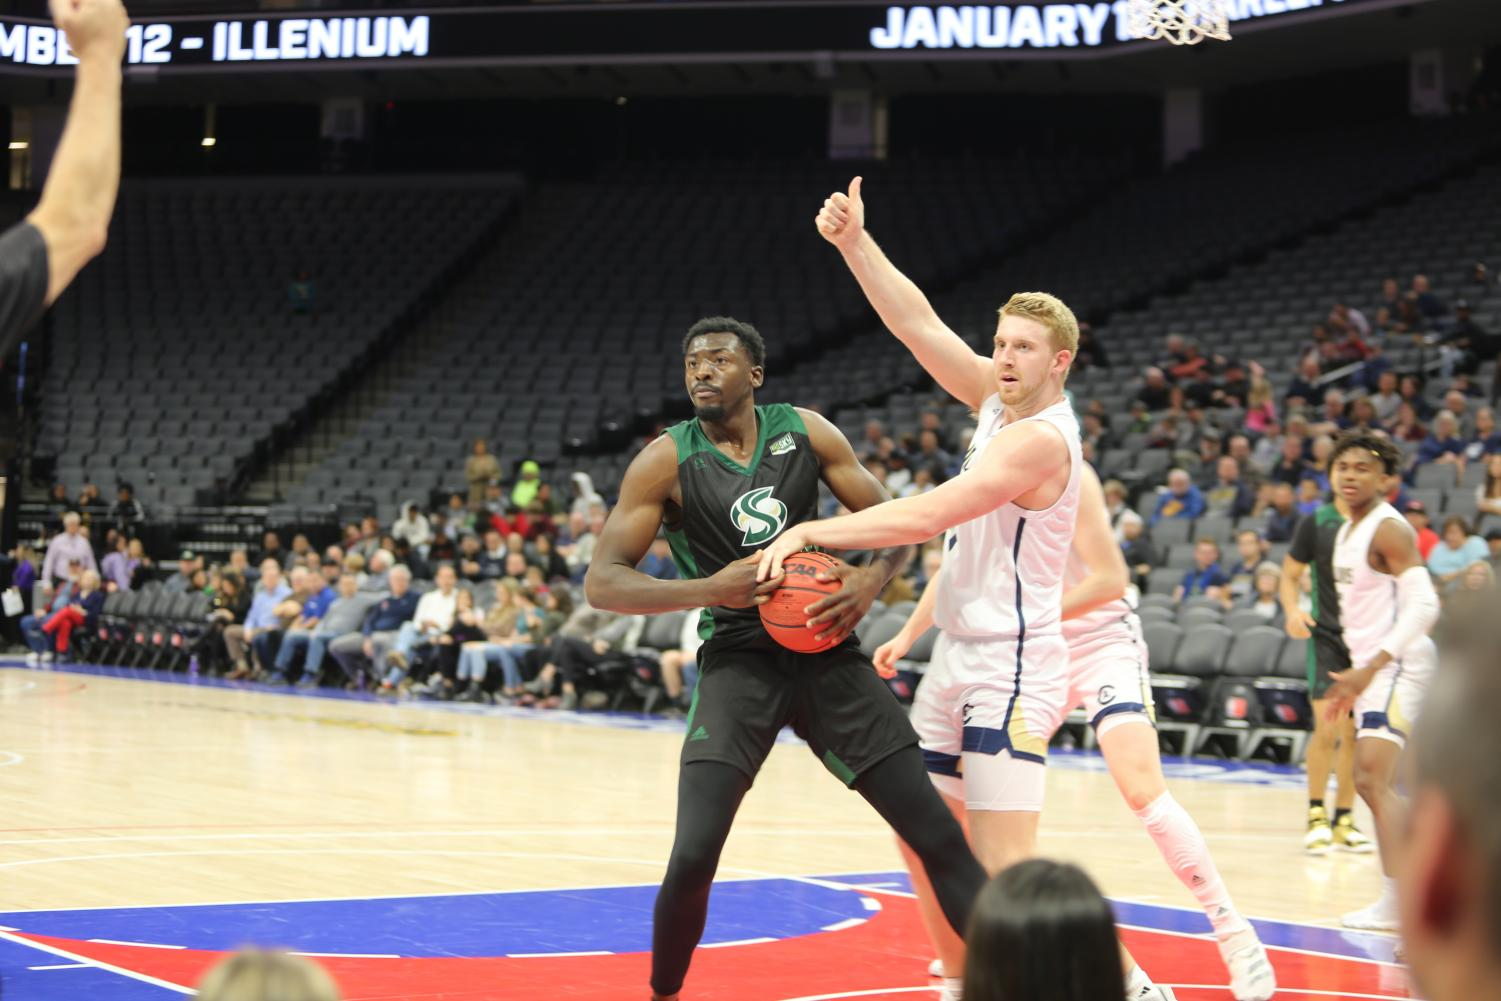 Sac State senior center Joshua Patton fights for a loose ball with UC Davis junior forward Kennedy Koehler against the Aggies on Wednesday, Nov. 20, 2019 at the Golden 1 Center. Patton scored a game high 17 points but The Hornets lost on the road at Northern Colorado on Thursday night.